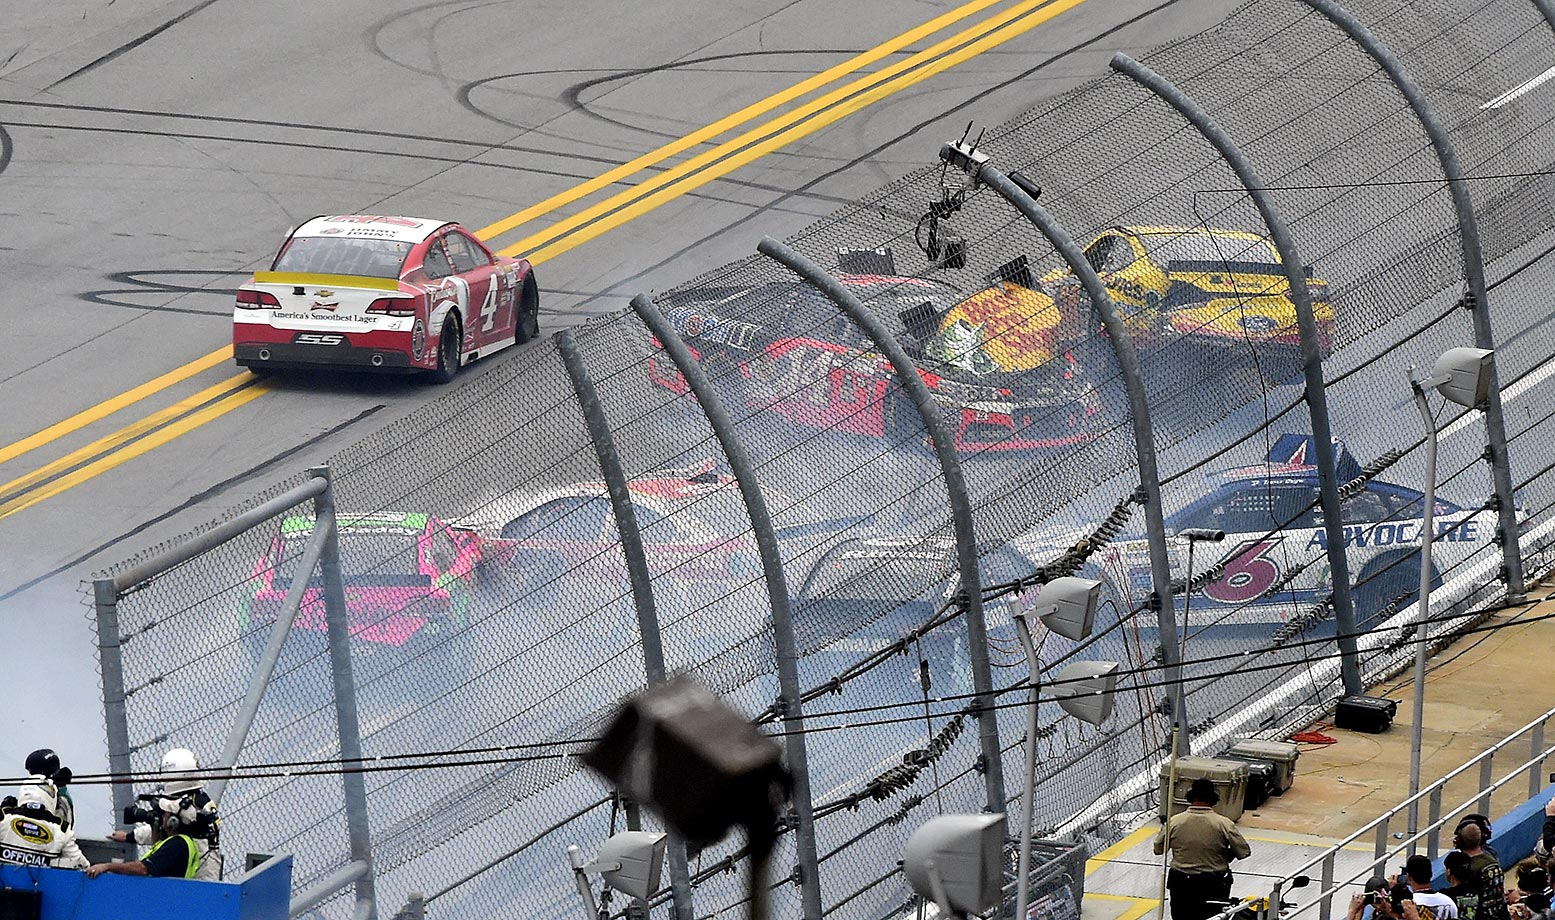 Kevin Harvick drives past a wreck at the NASCAR Sprint Cup Series auto race at Talladega Superspeedway.